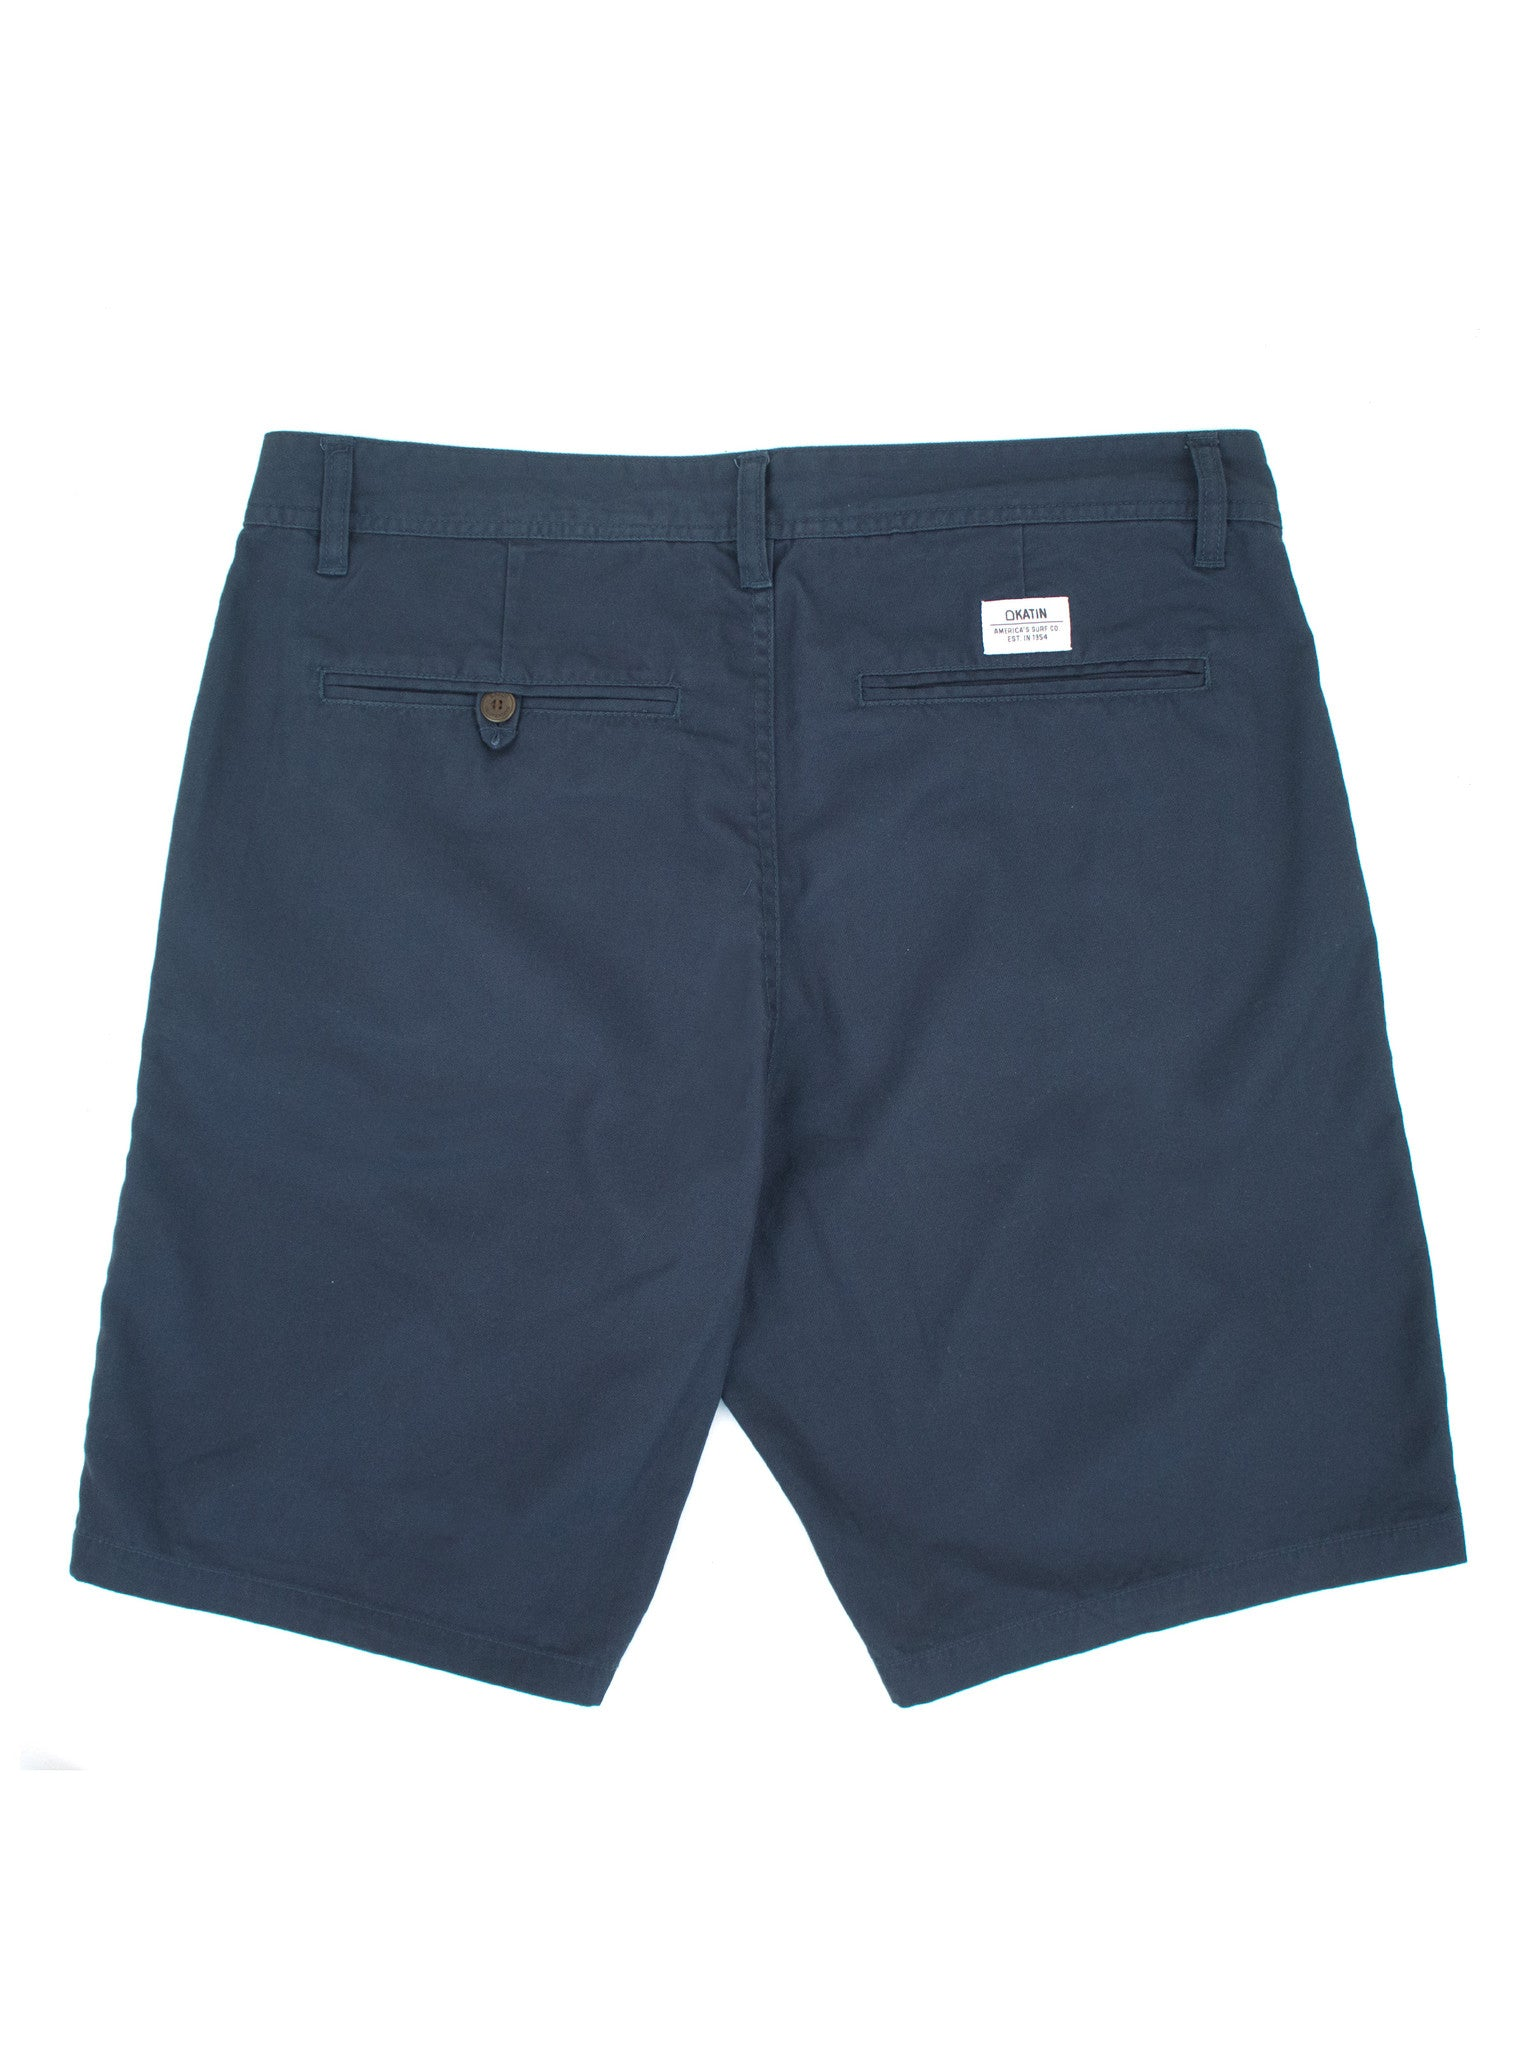 Katin Cove Short - Navy